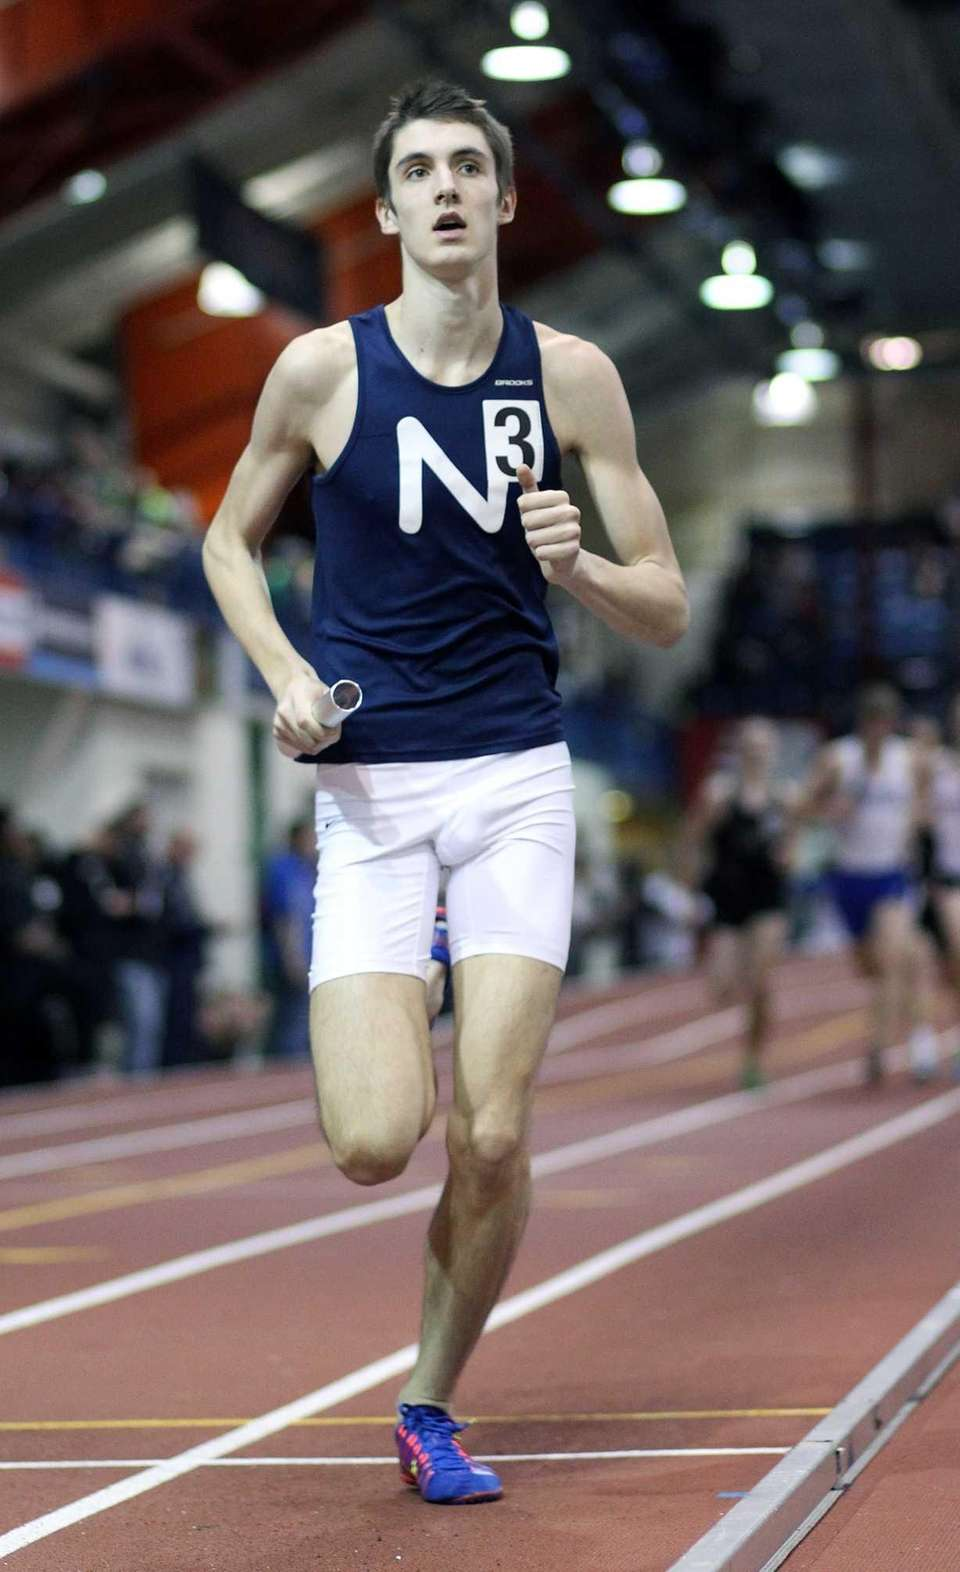 Northport's James Dickinson runs the first leg of